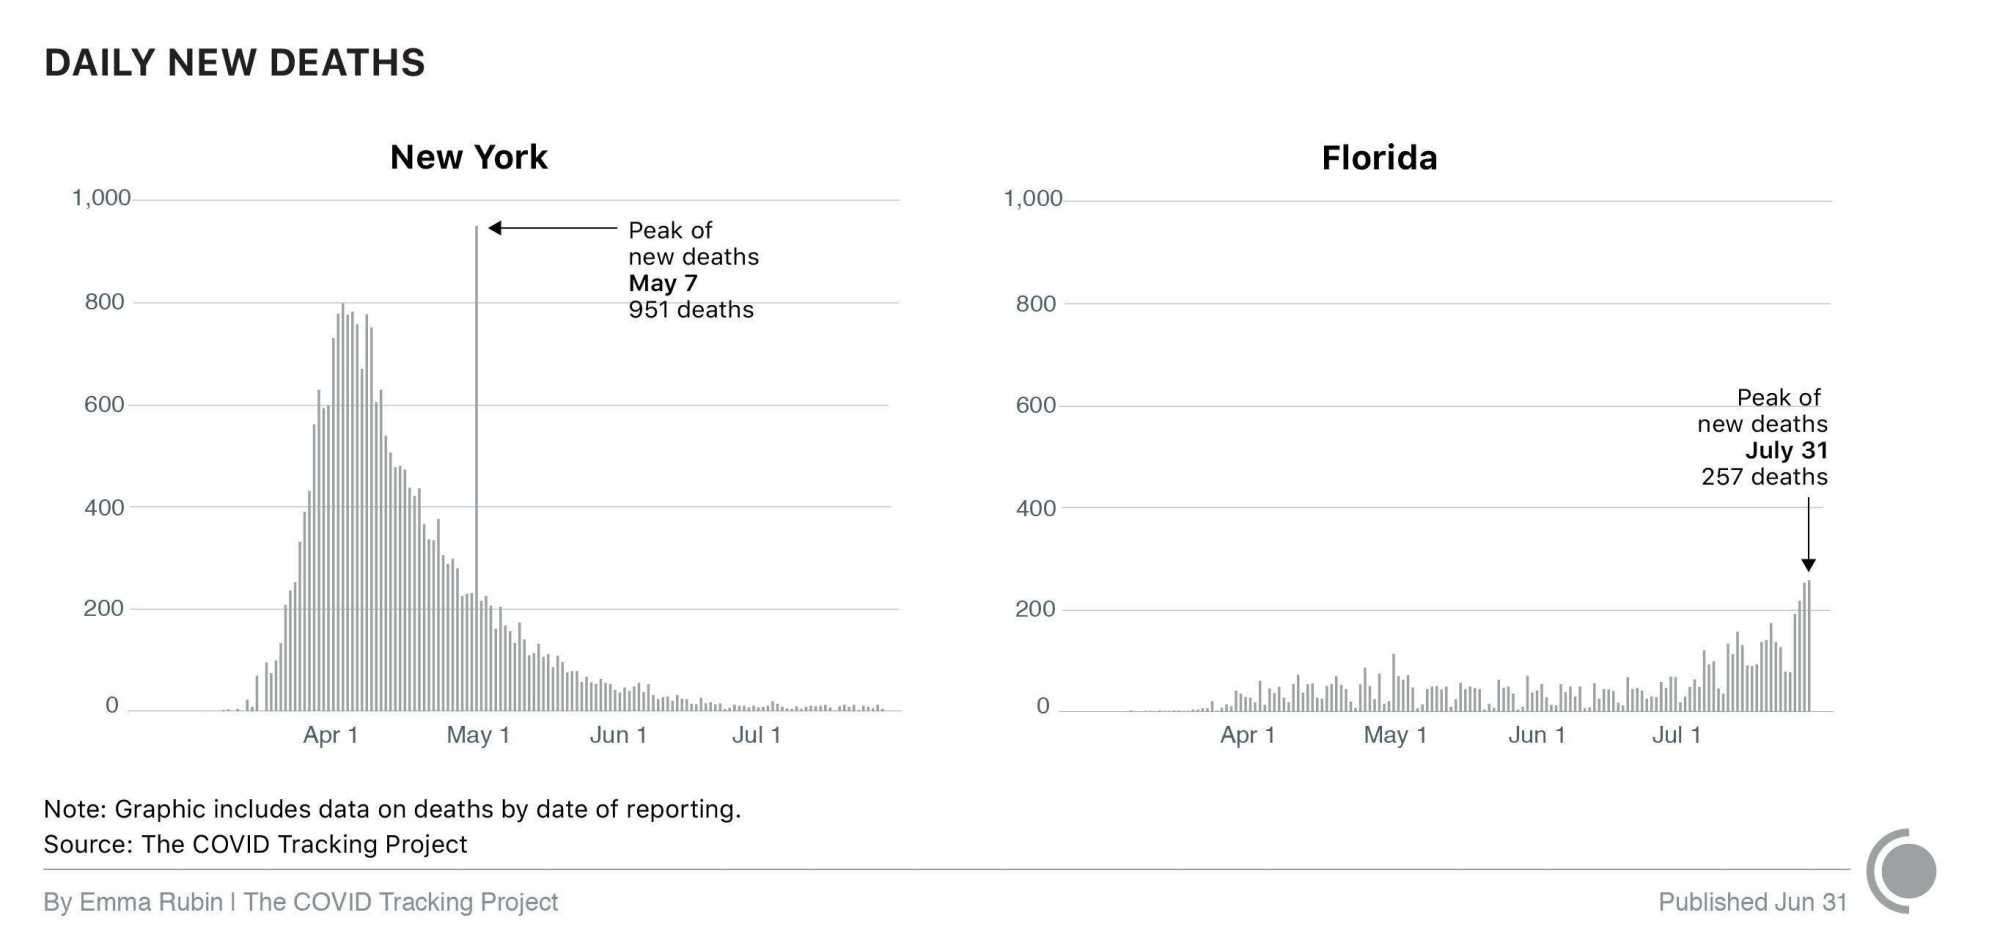 Charts showing daily new deaths in New York and Florida, from March through July, 2020.